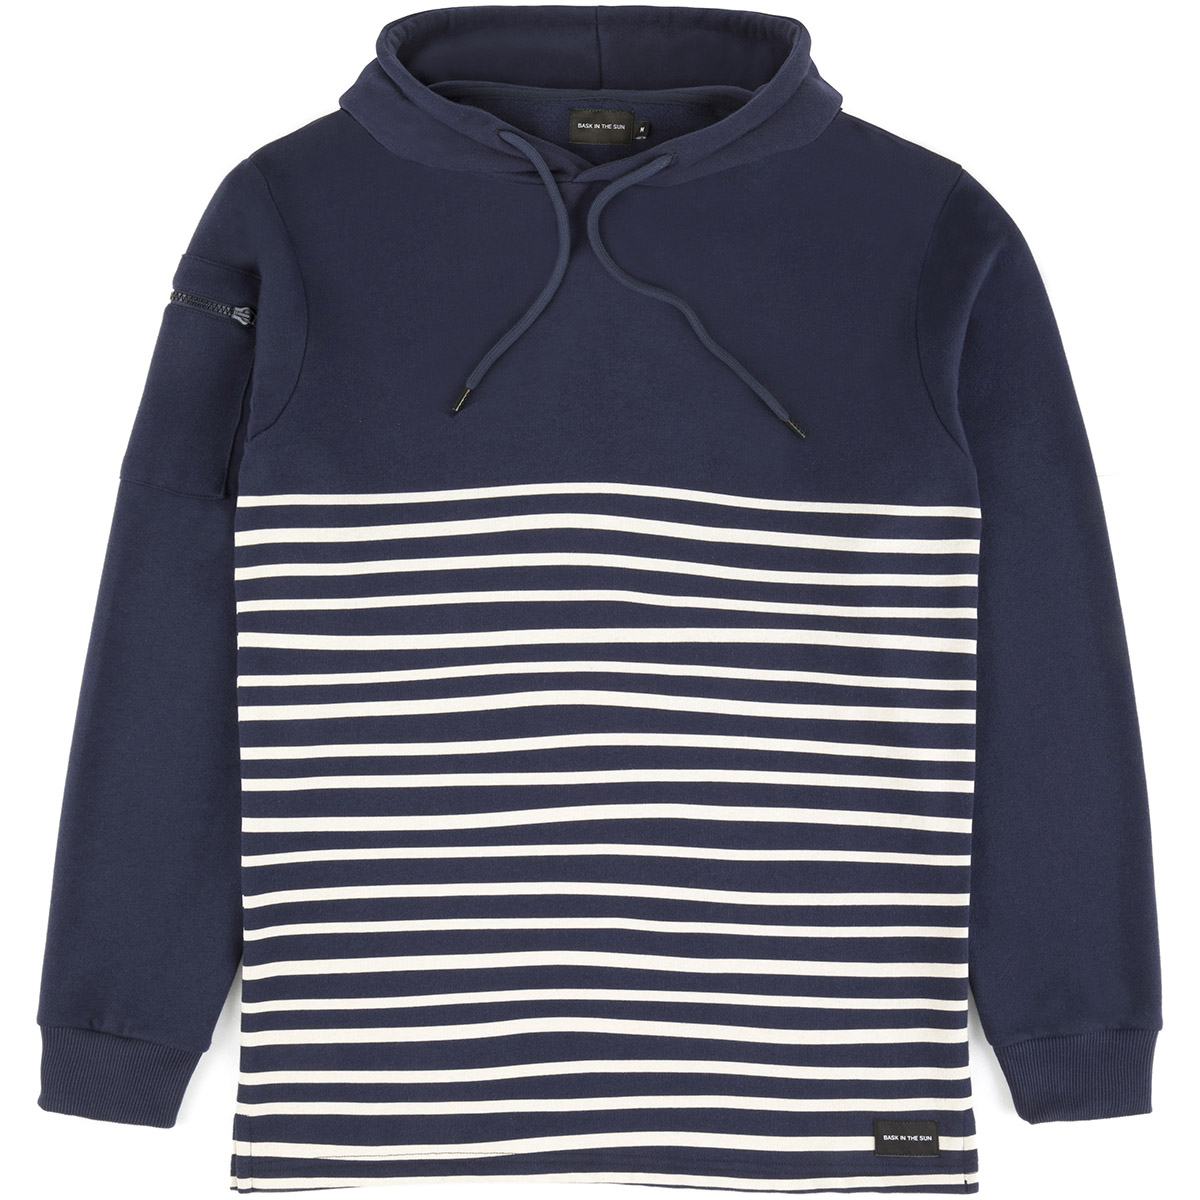 Bask in the Sun - Sweat en coton bio navy esperanza